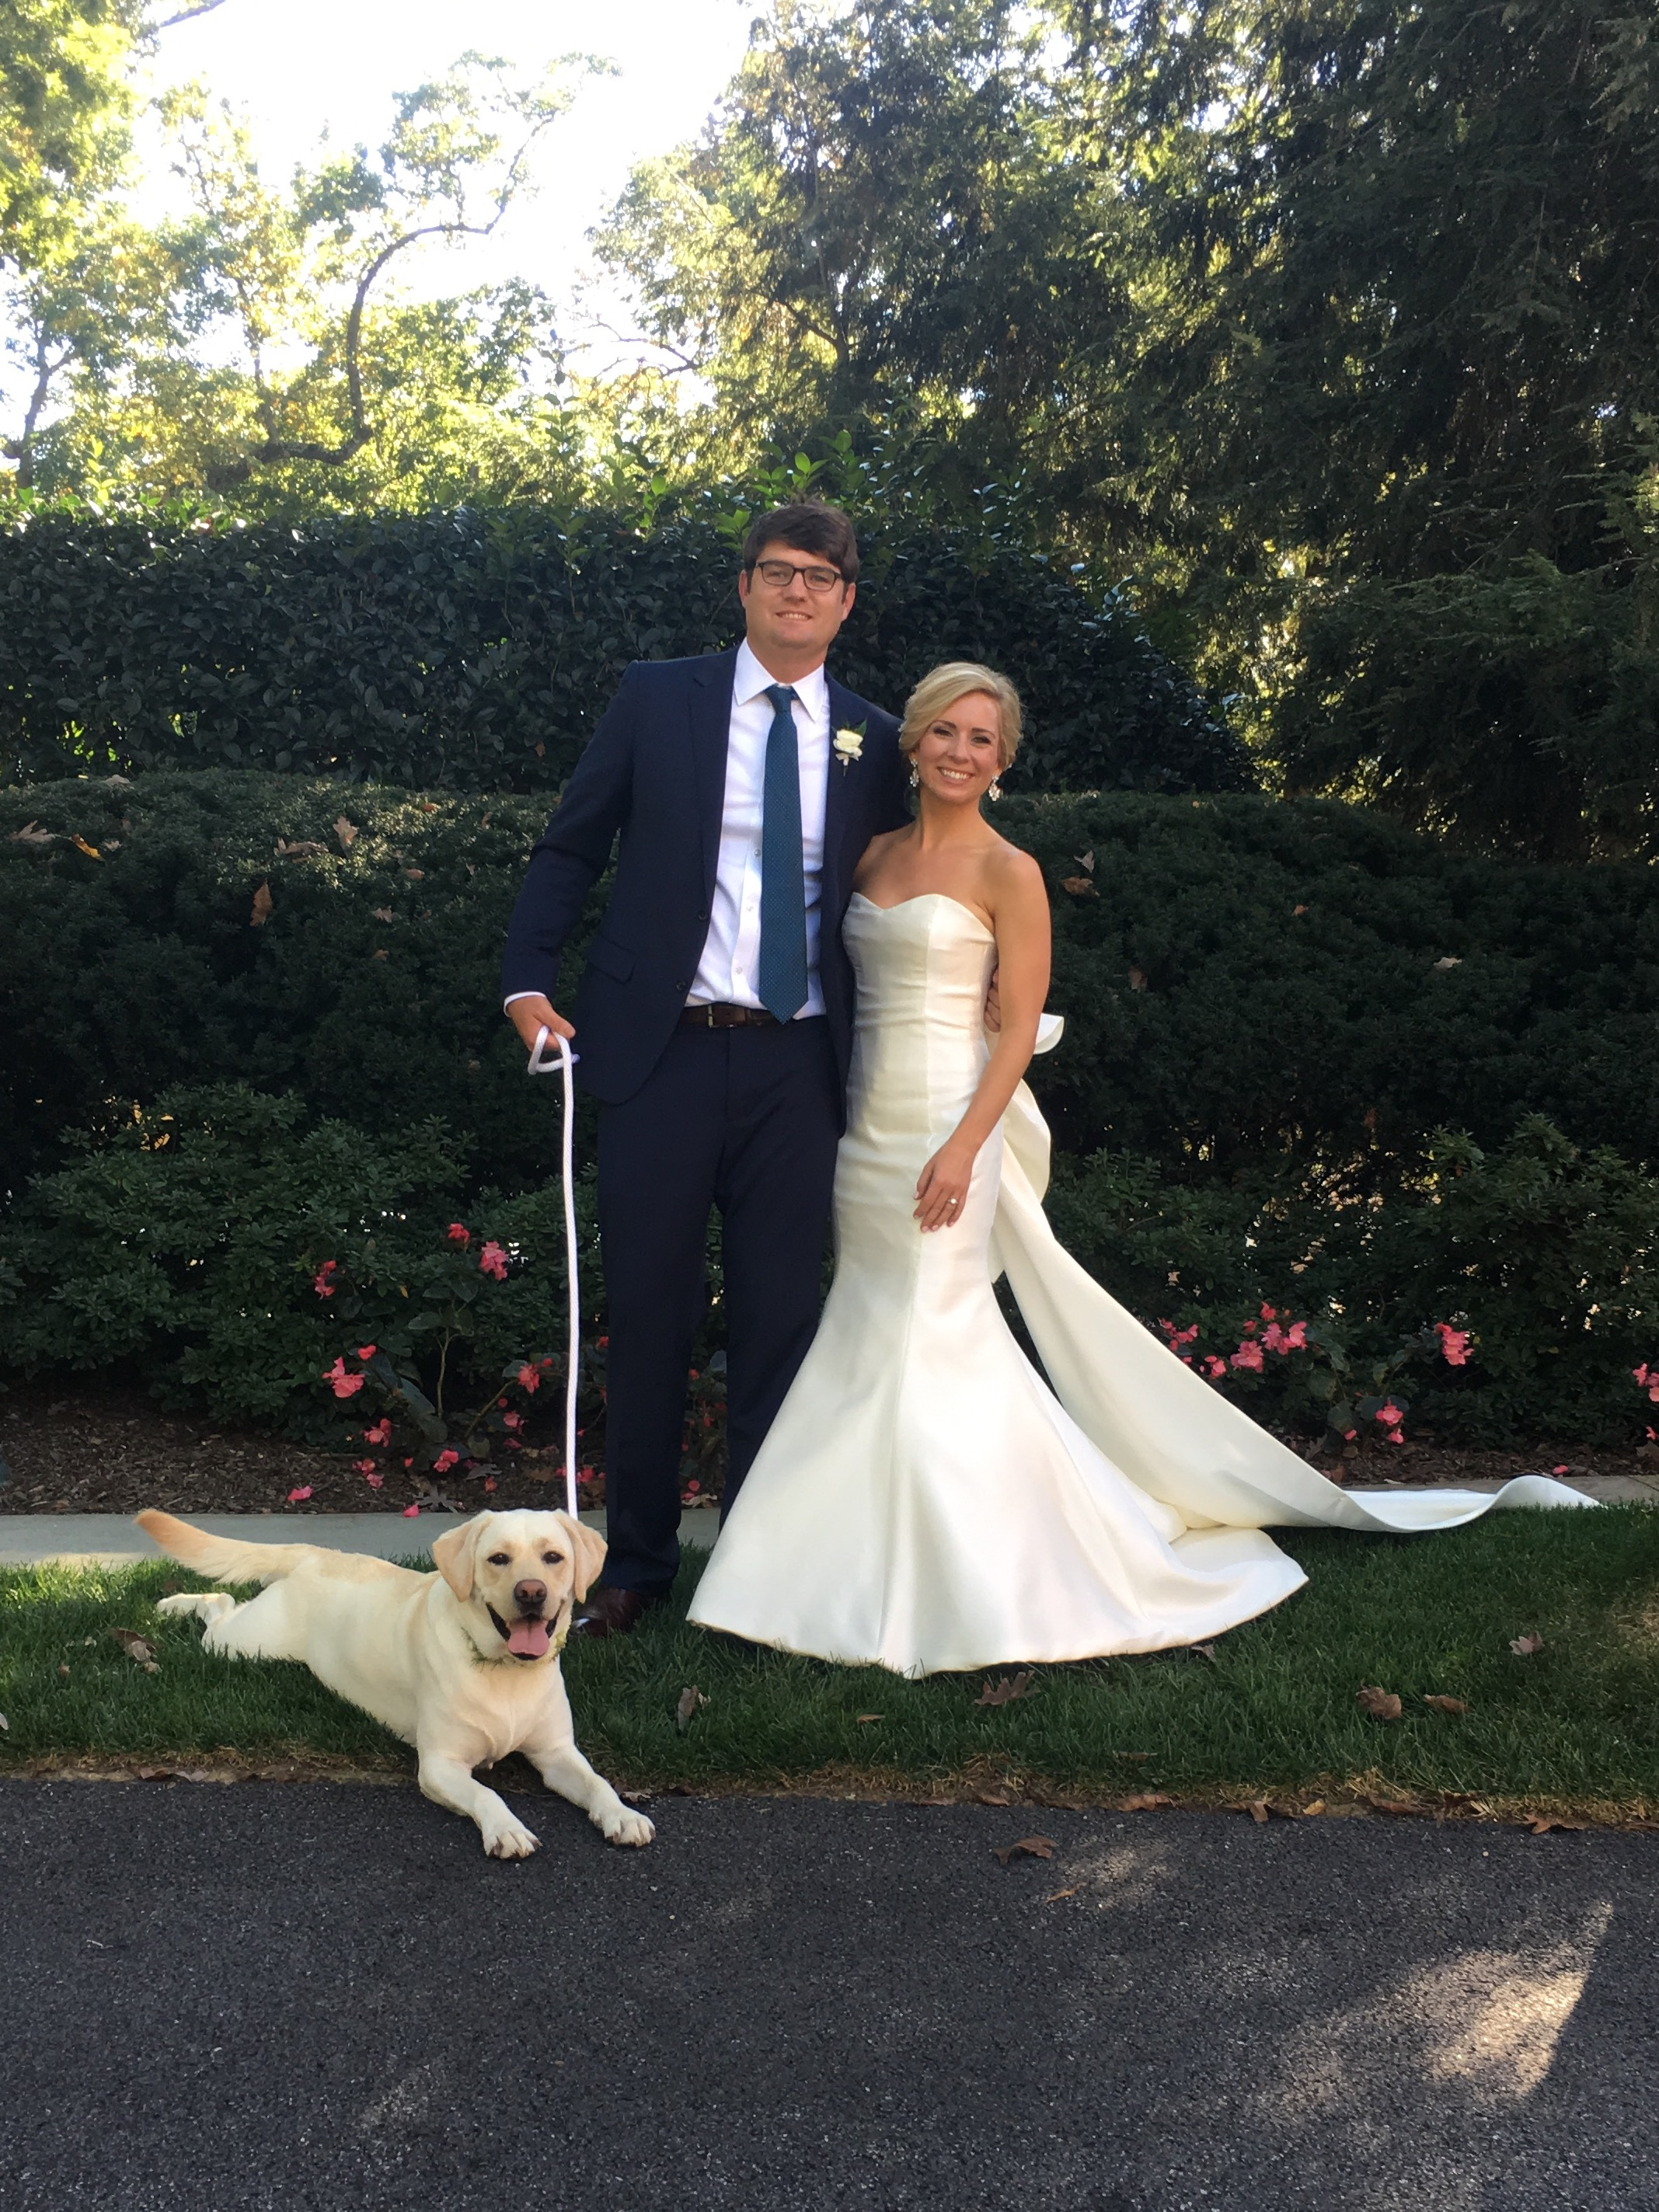 Furever and Fur Always Wedding Day Pet Services 00007.JPG